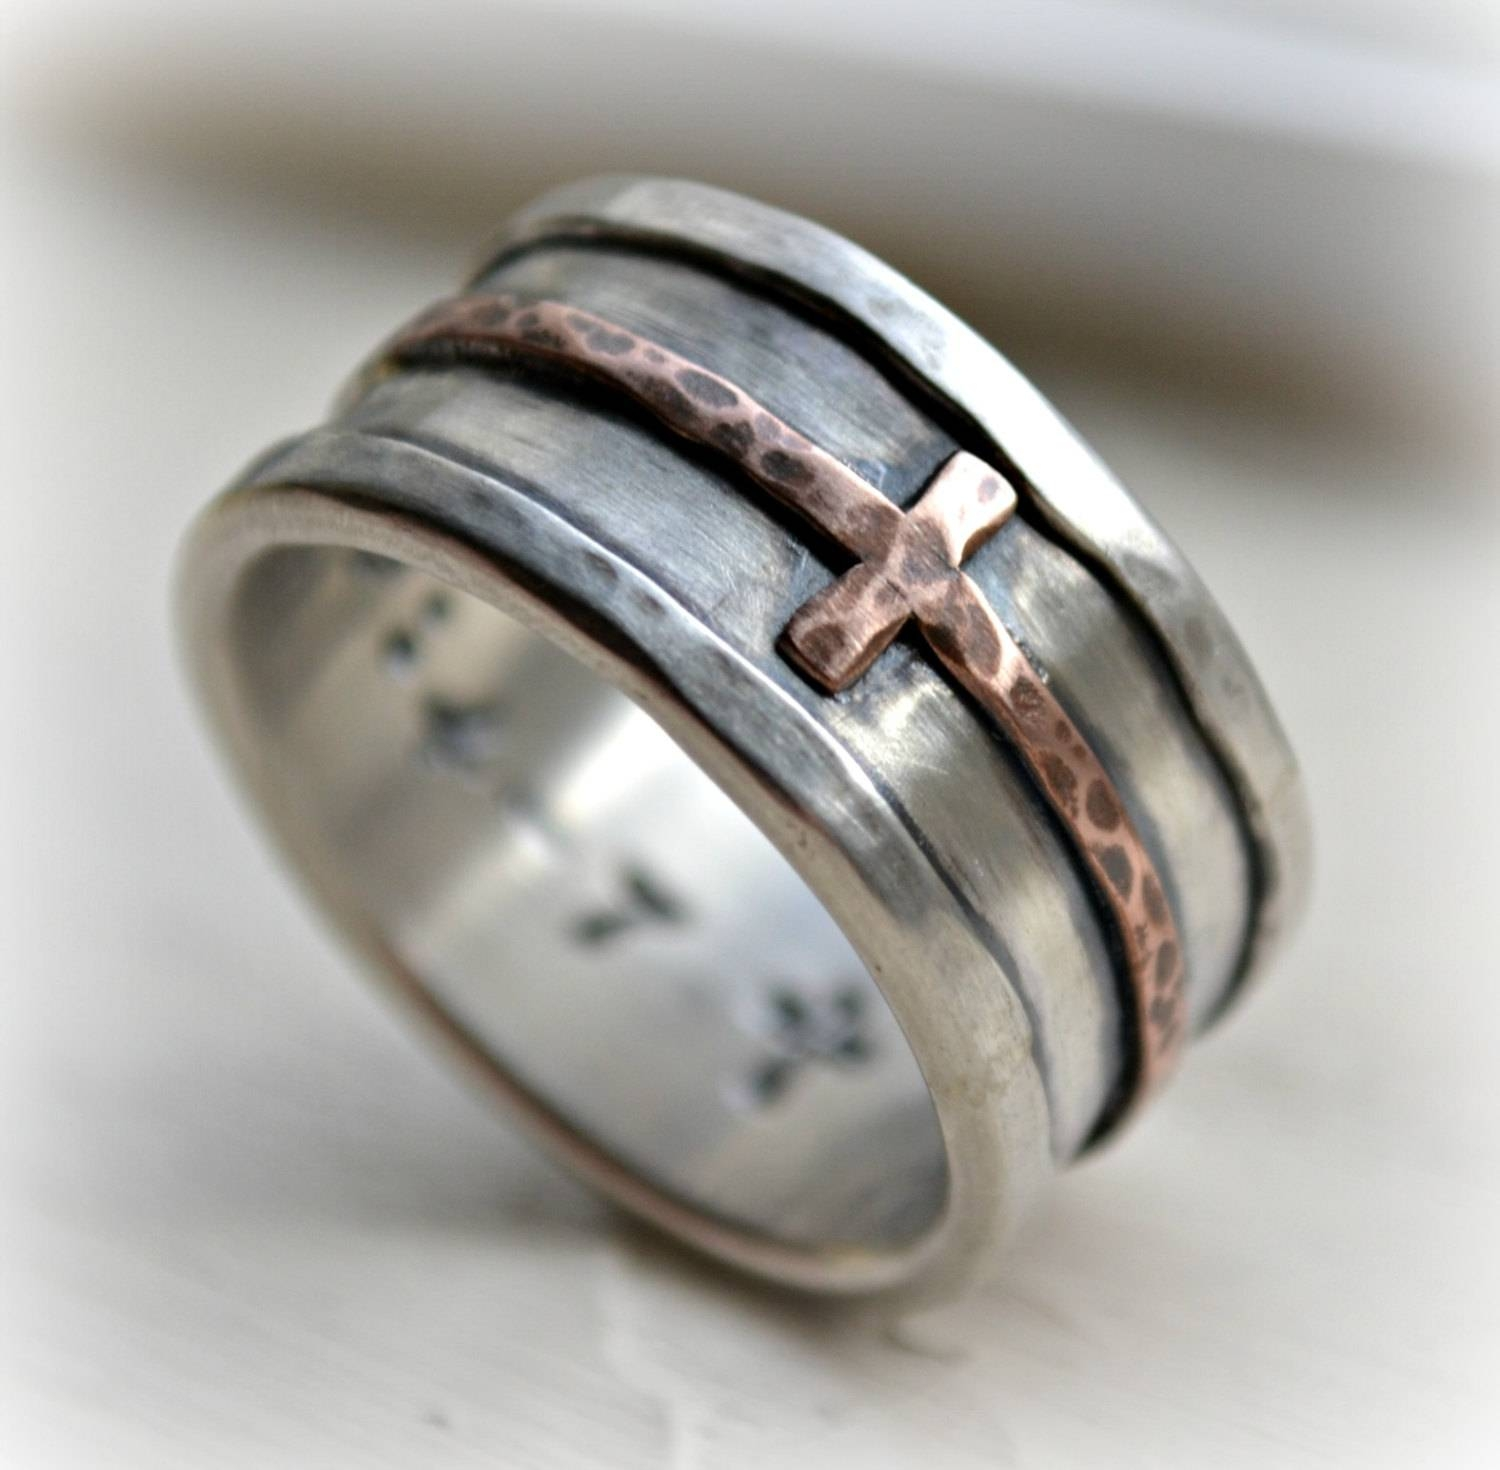 Mens Cross Wedding Band Rustic Hammered Cross Ring Oxidized With Regard To Mens Western Wedding Bands (Gallery 5 of 15)